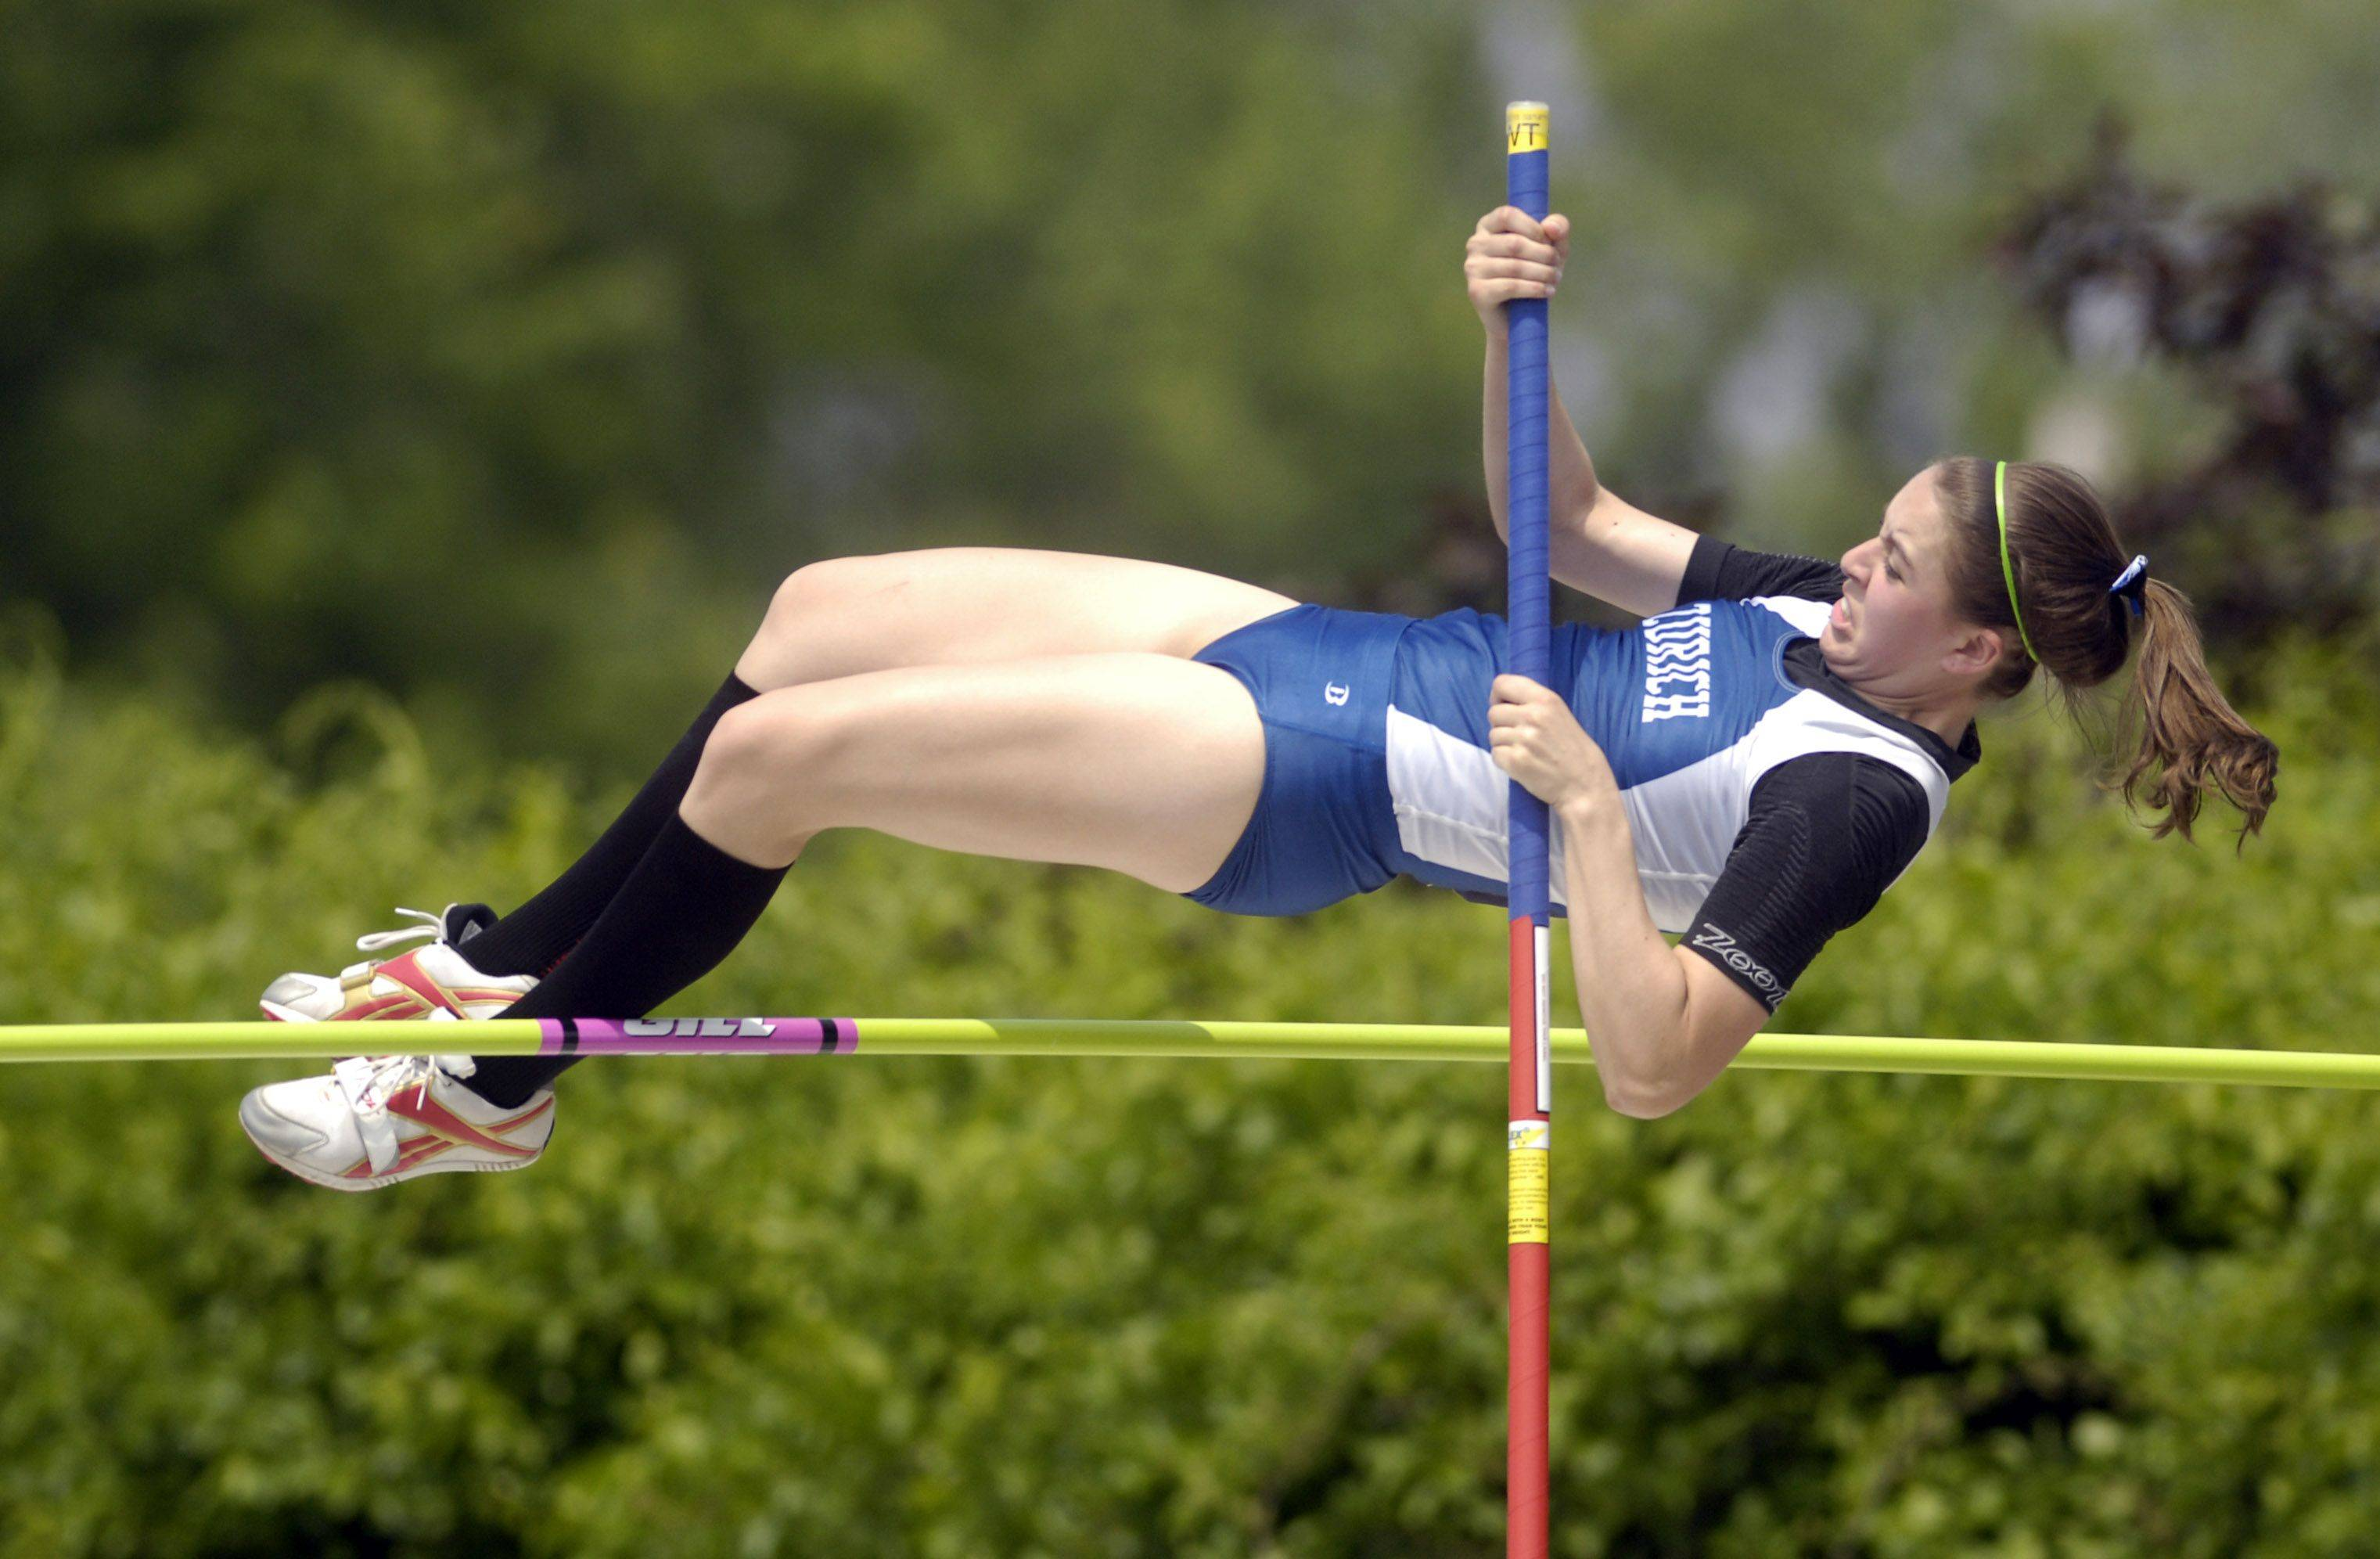 Lake Zurich's Emily Trittschuh competes in the pole vault during Friday's preliminaries of the IHSA girls state track finals in Charleston.